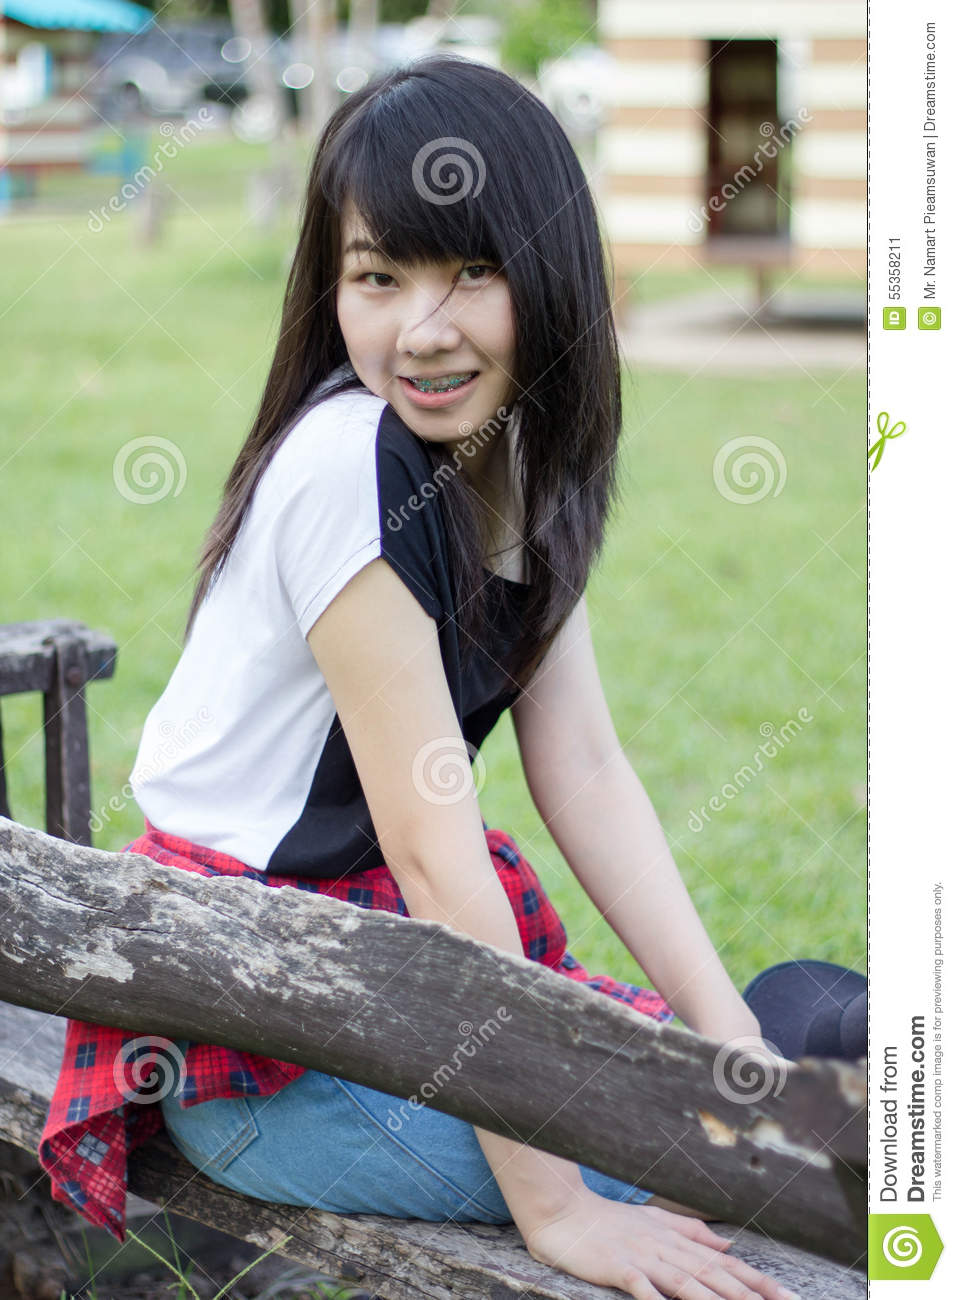 Asia Woman Thai Teen Relax On Park Happy